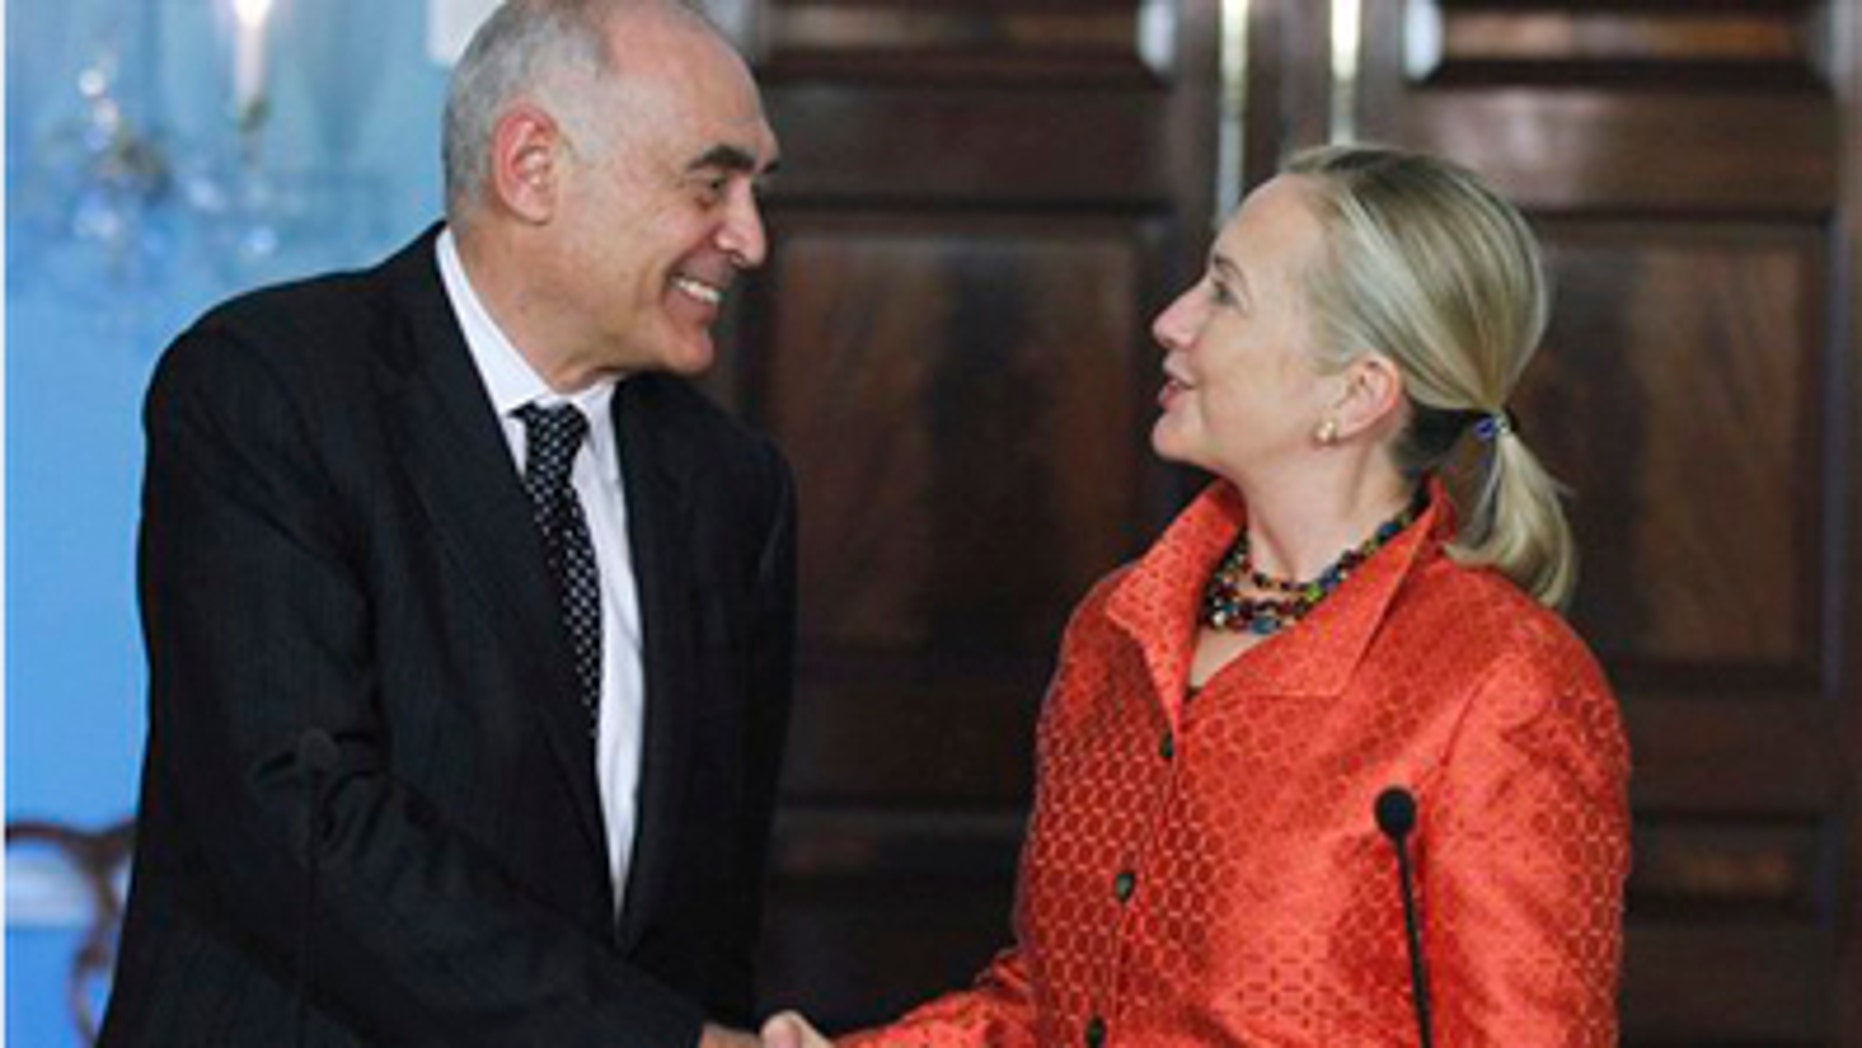 Sept. 28: Secretary of State Hillary Rodham Clinton shakes hands with Egyptian Foreign Affairs Minister Mohamed Kamel Amr during a joint news conference following a bilateral meeting at the State Department in Washington.